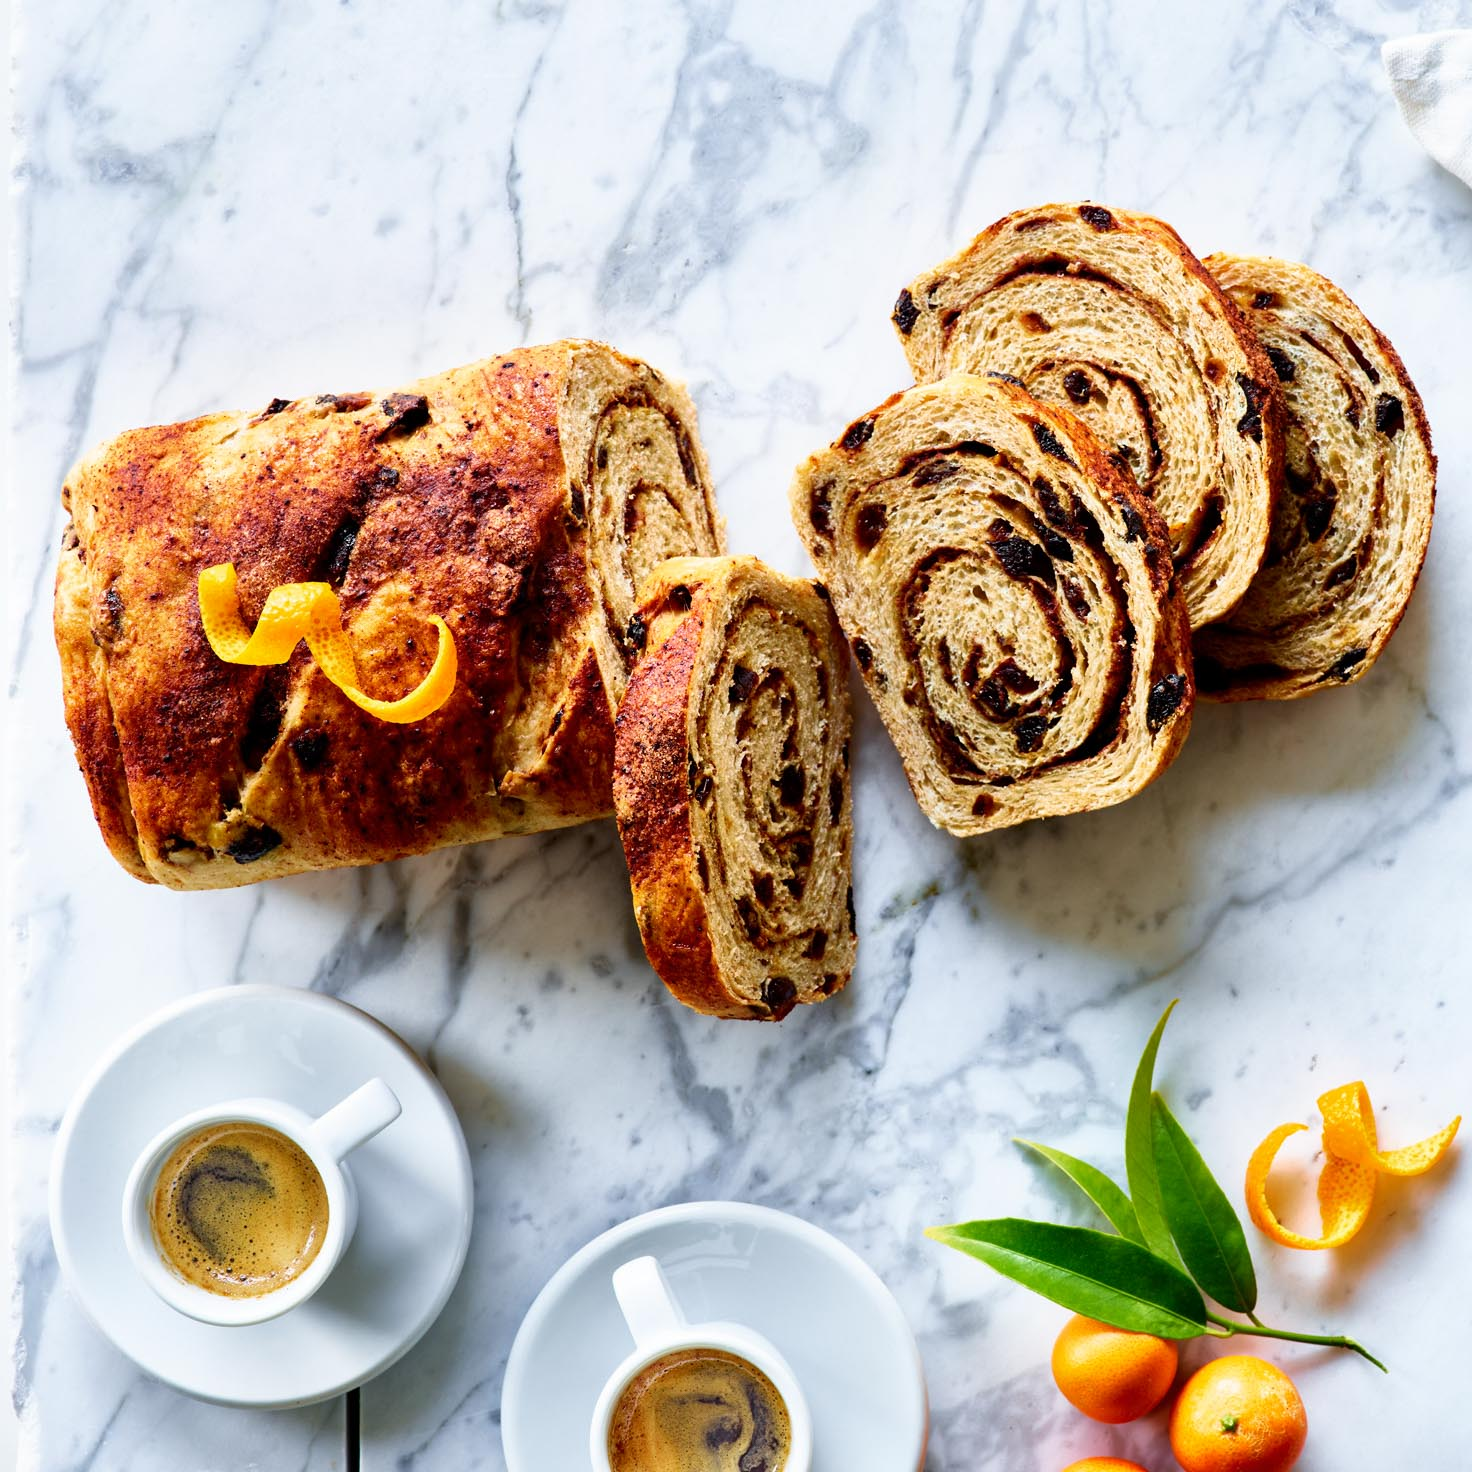 <p>Using prunes instead of raisins offers a deeper caramel flavor to classic swirl bread while dried plum powder helps heighten the flavor of the cinnamon. </p>